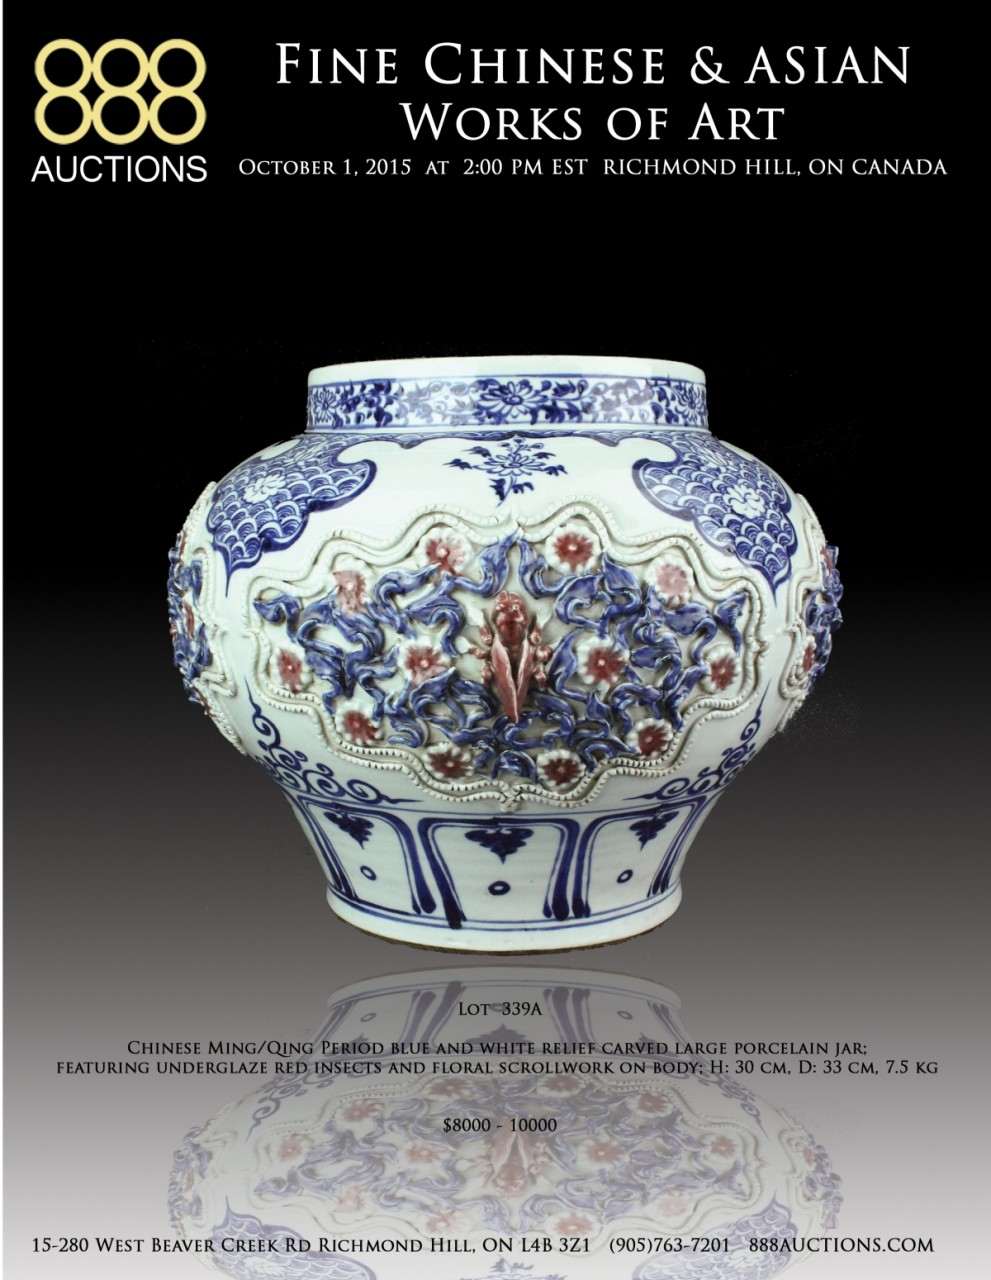 NEXT AUCTION 1 OCT 2015 FINE CHINESE & ASIAN WORKS OF ART